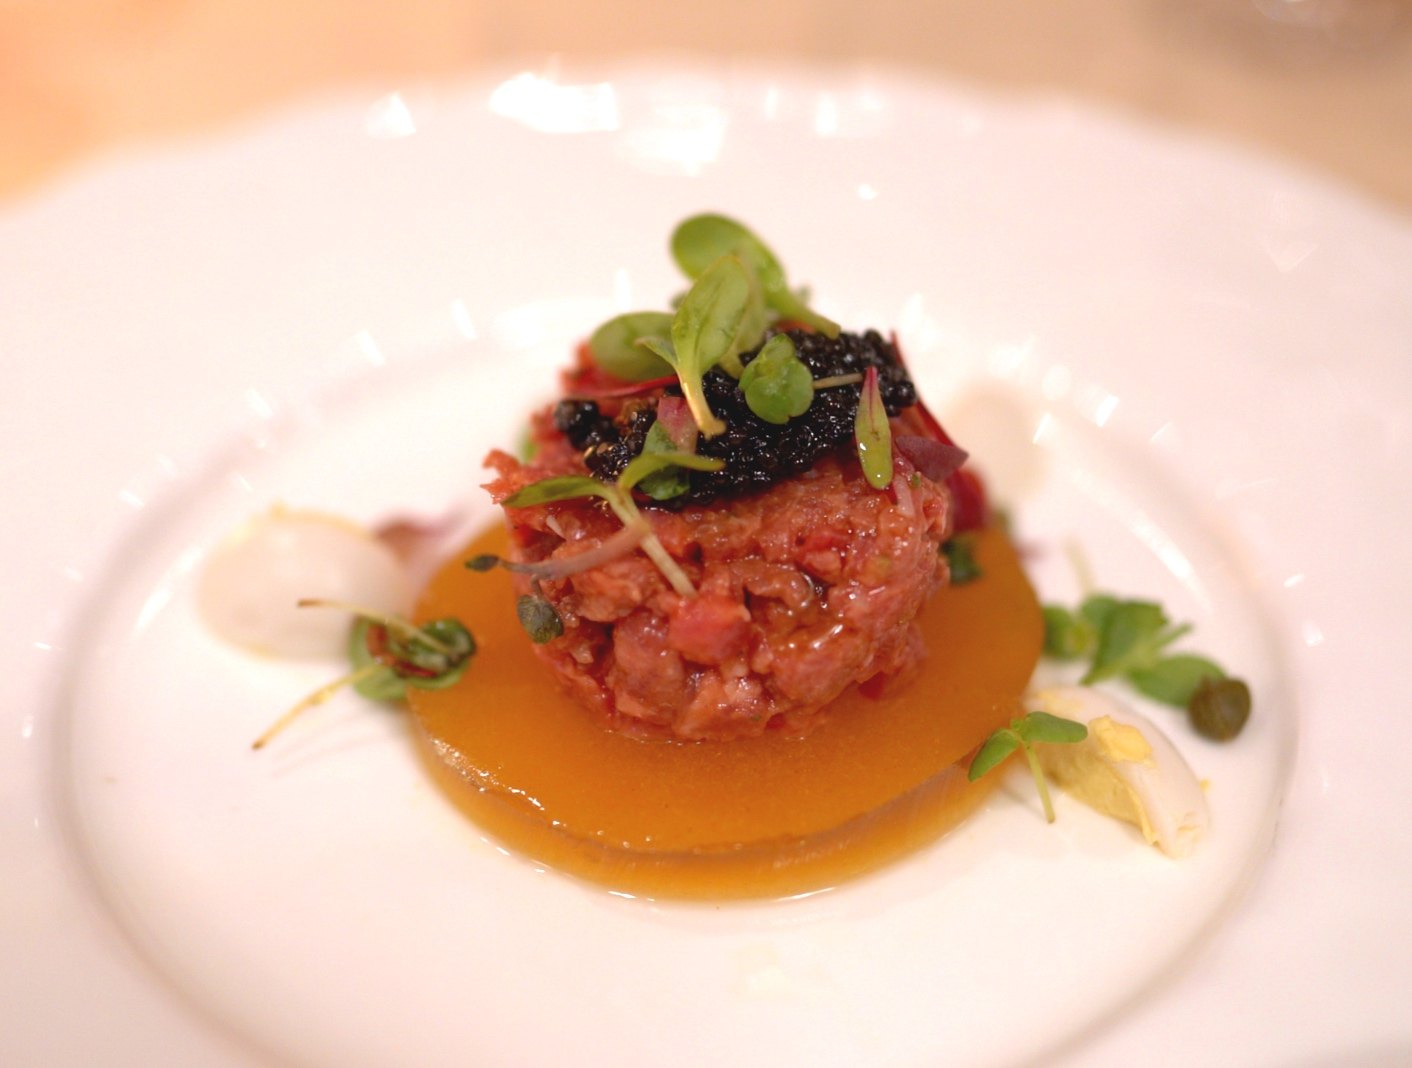 Beef and caviar tartare.